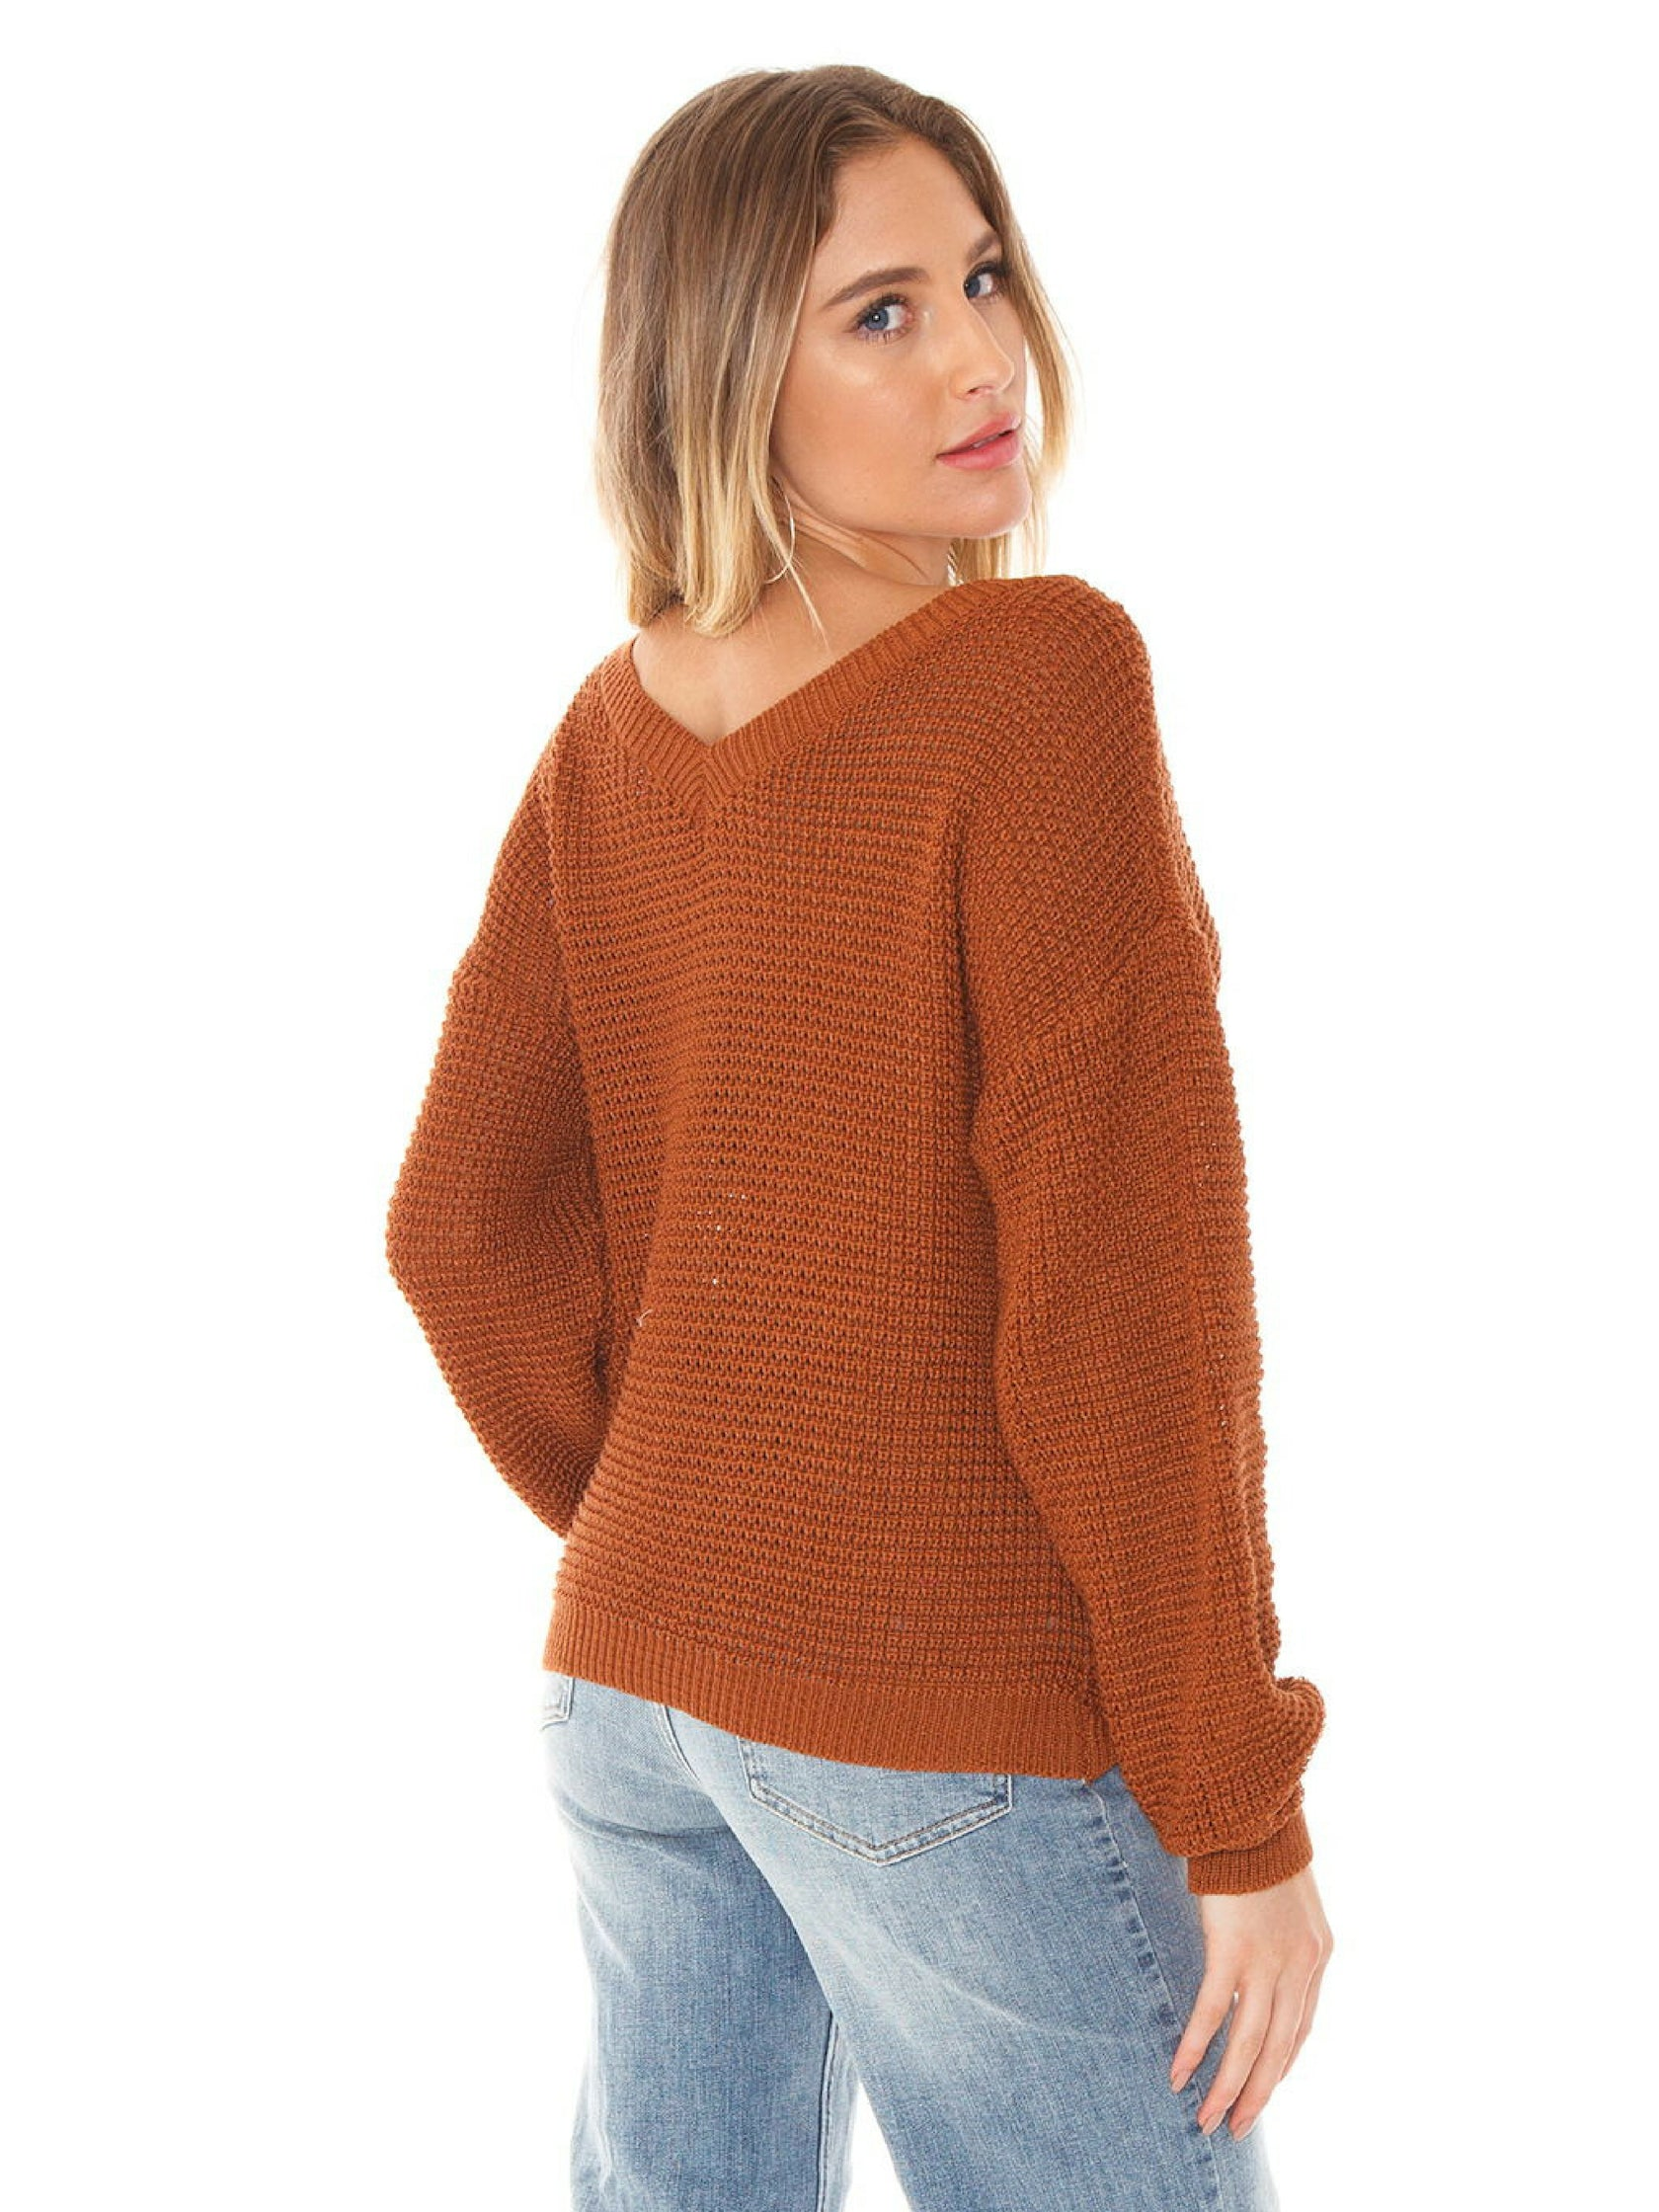 Women outfit in a sweater rental from FASHIONPASS called Kylie Twist Front Sweater